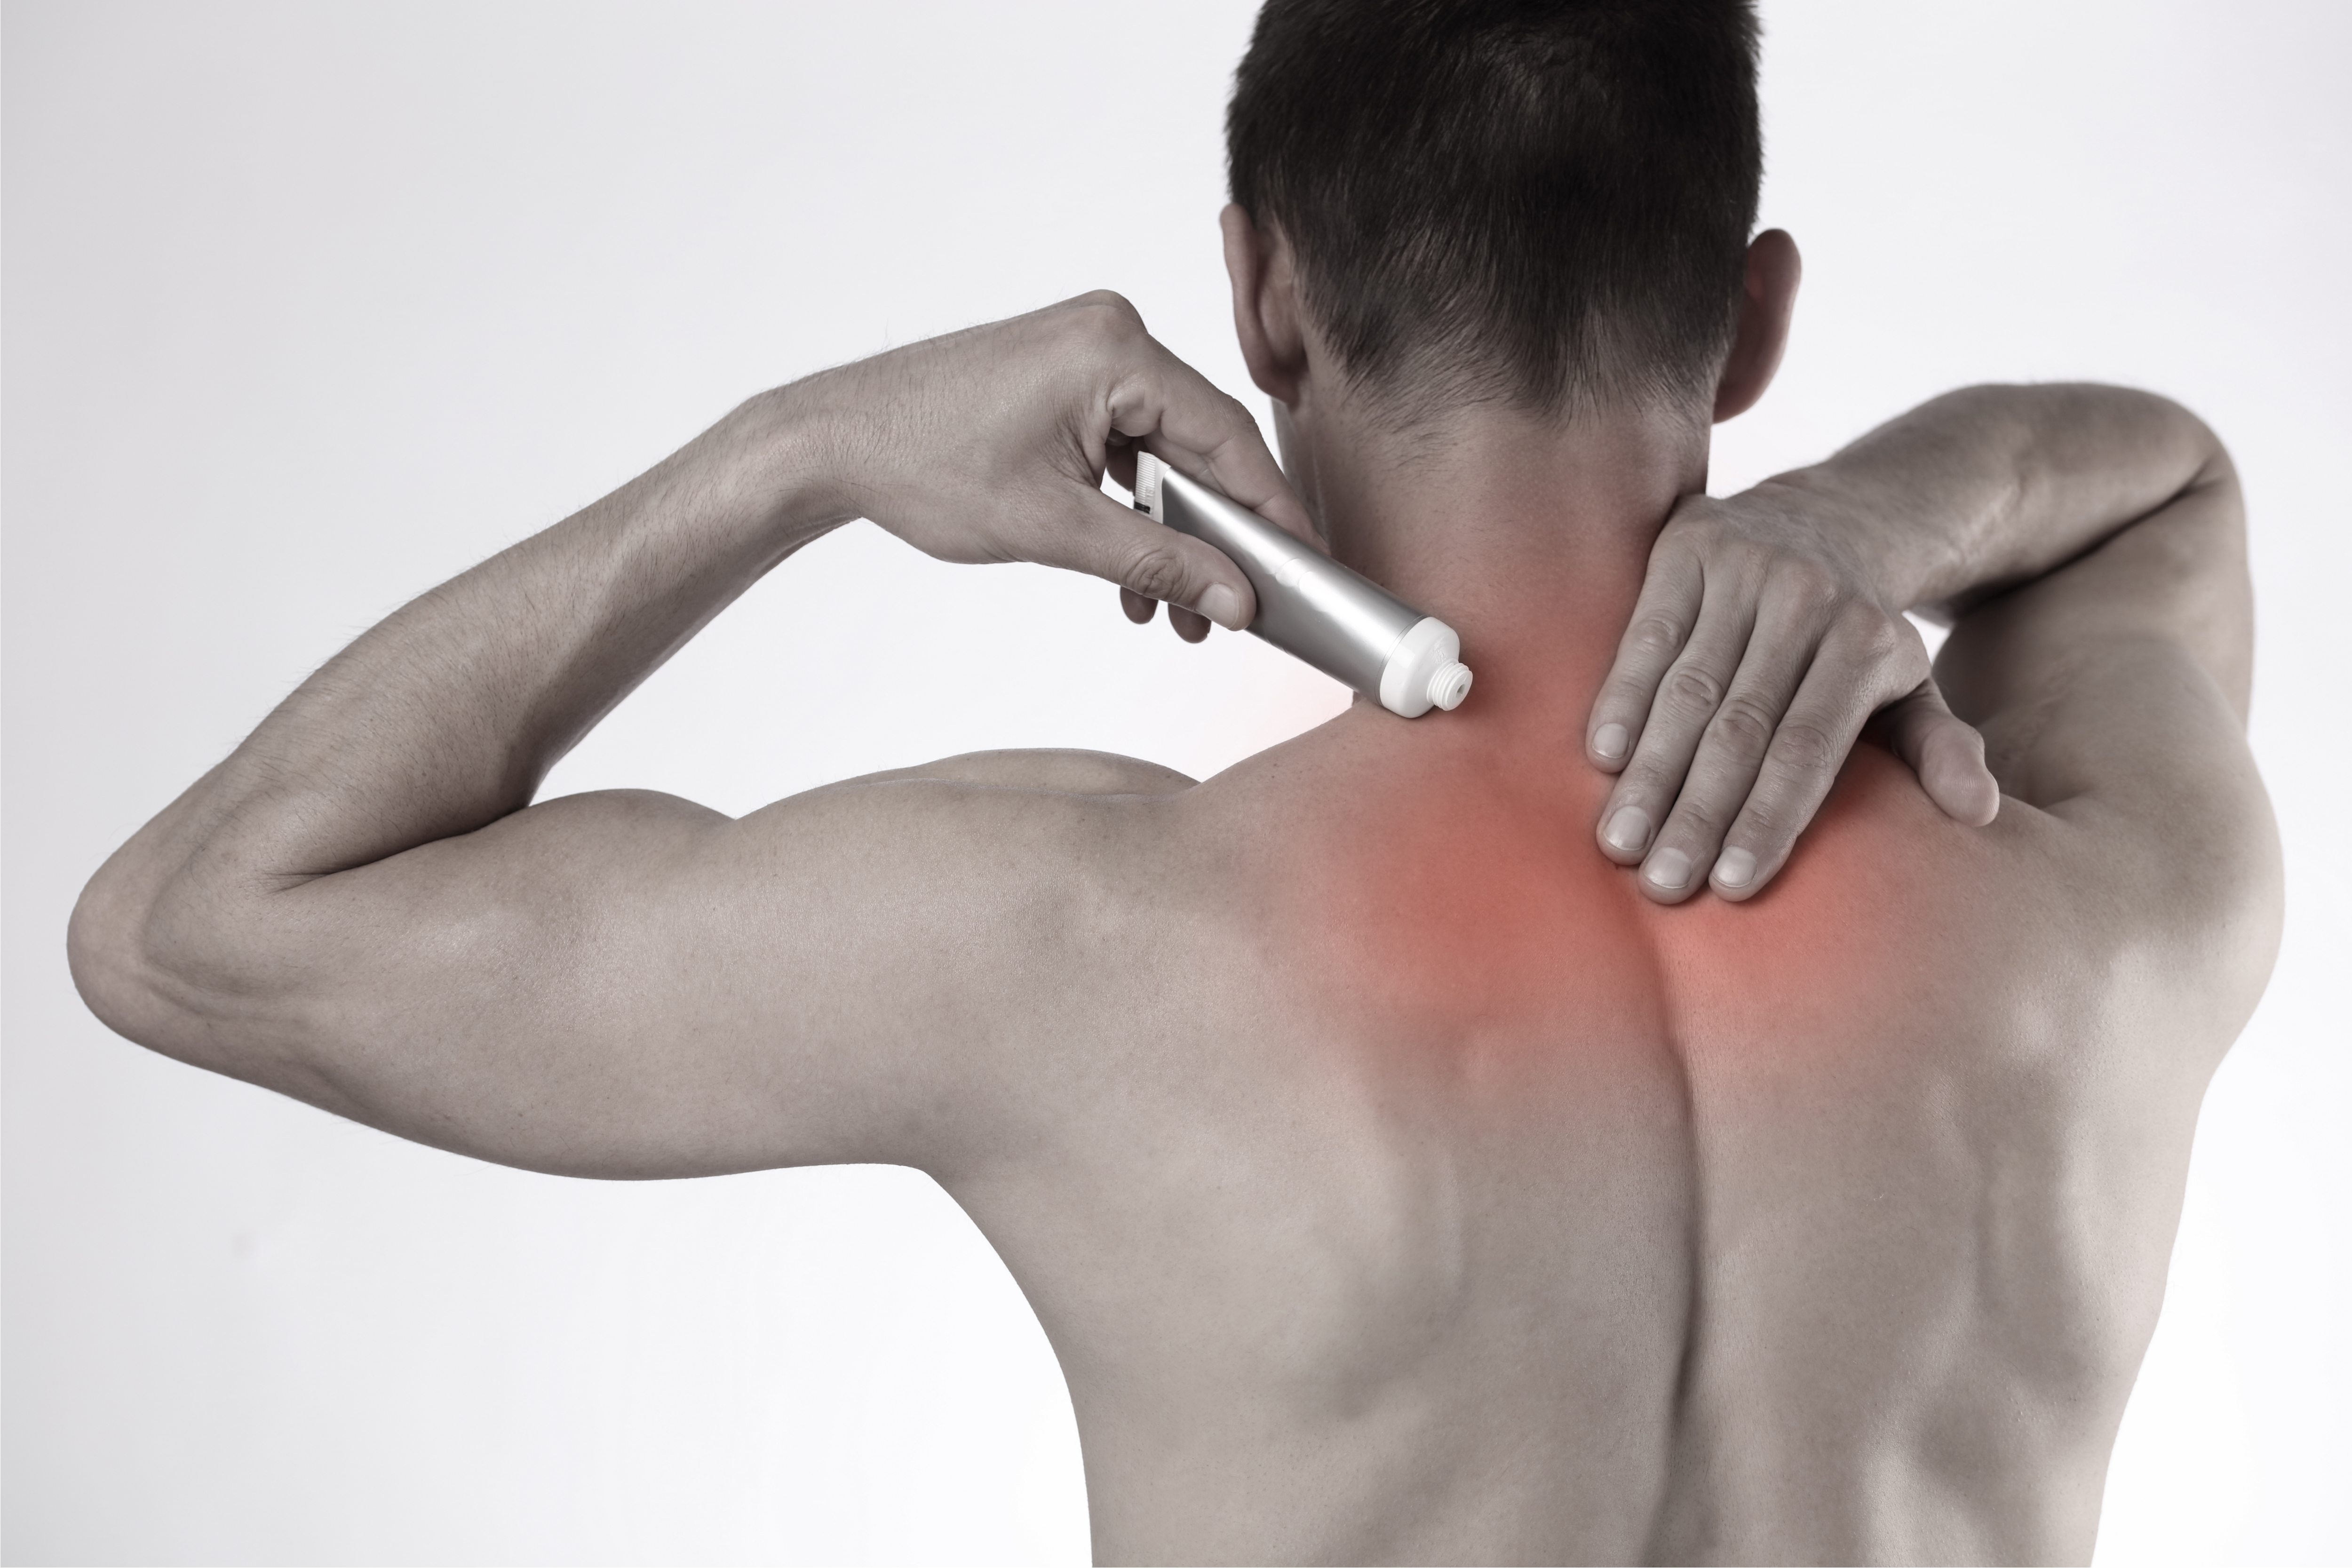 U.S. Topical Pain Relief Market to Witness Increasing Growth $3,730 Million at CAGR of 6.0% In 2025 | Allied Market Research